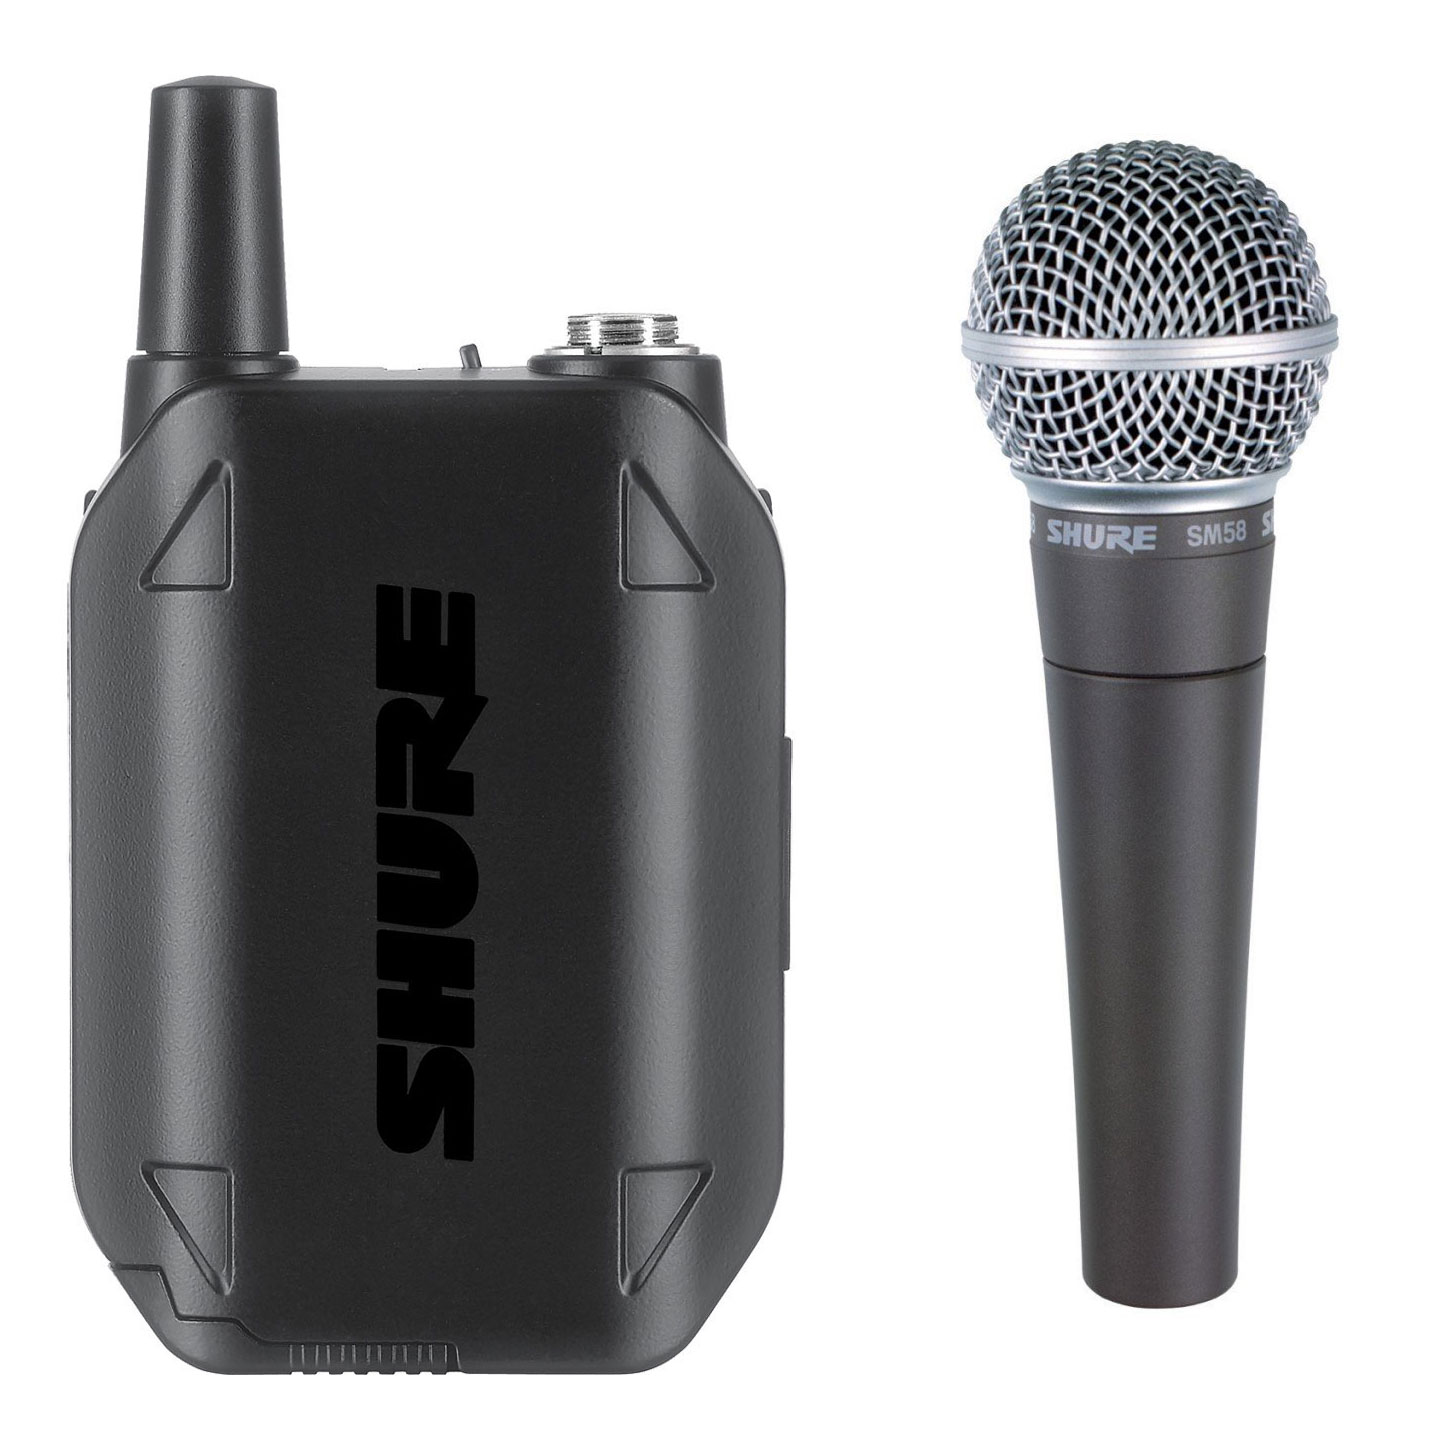 Shure GLX-D Handheld Transmitter with SM58 Microphone